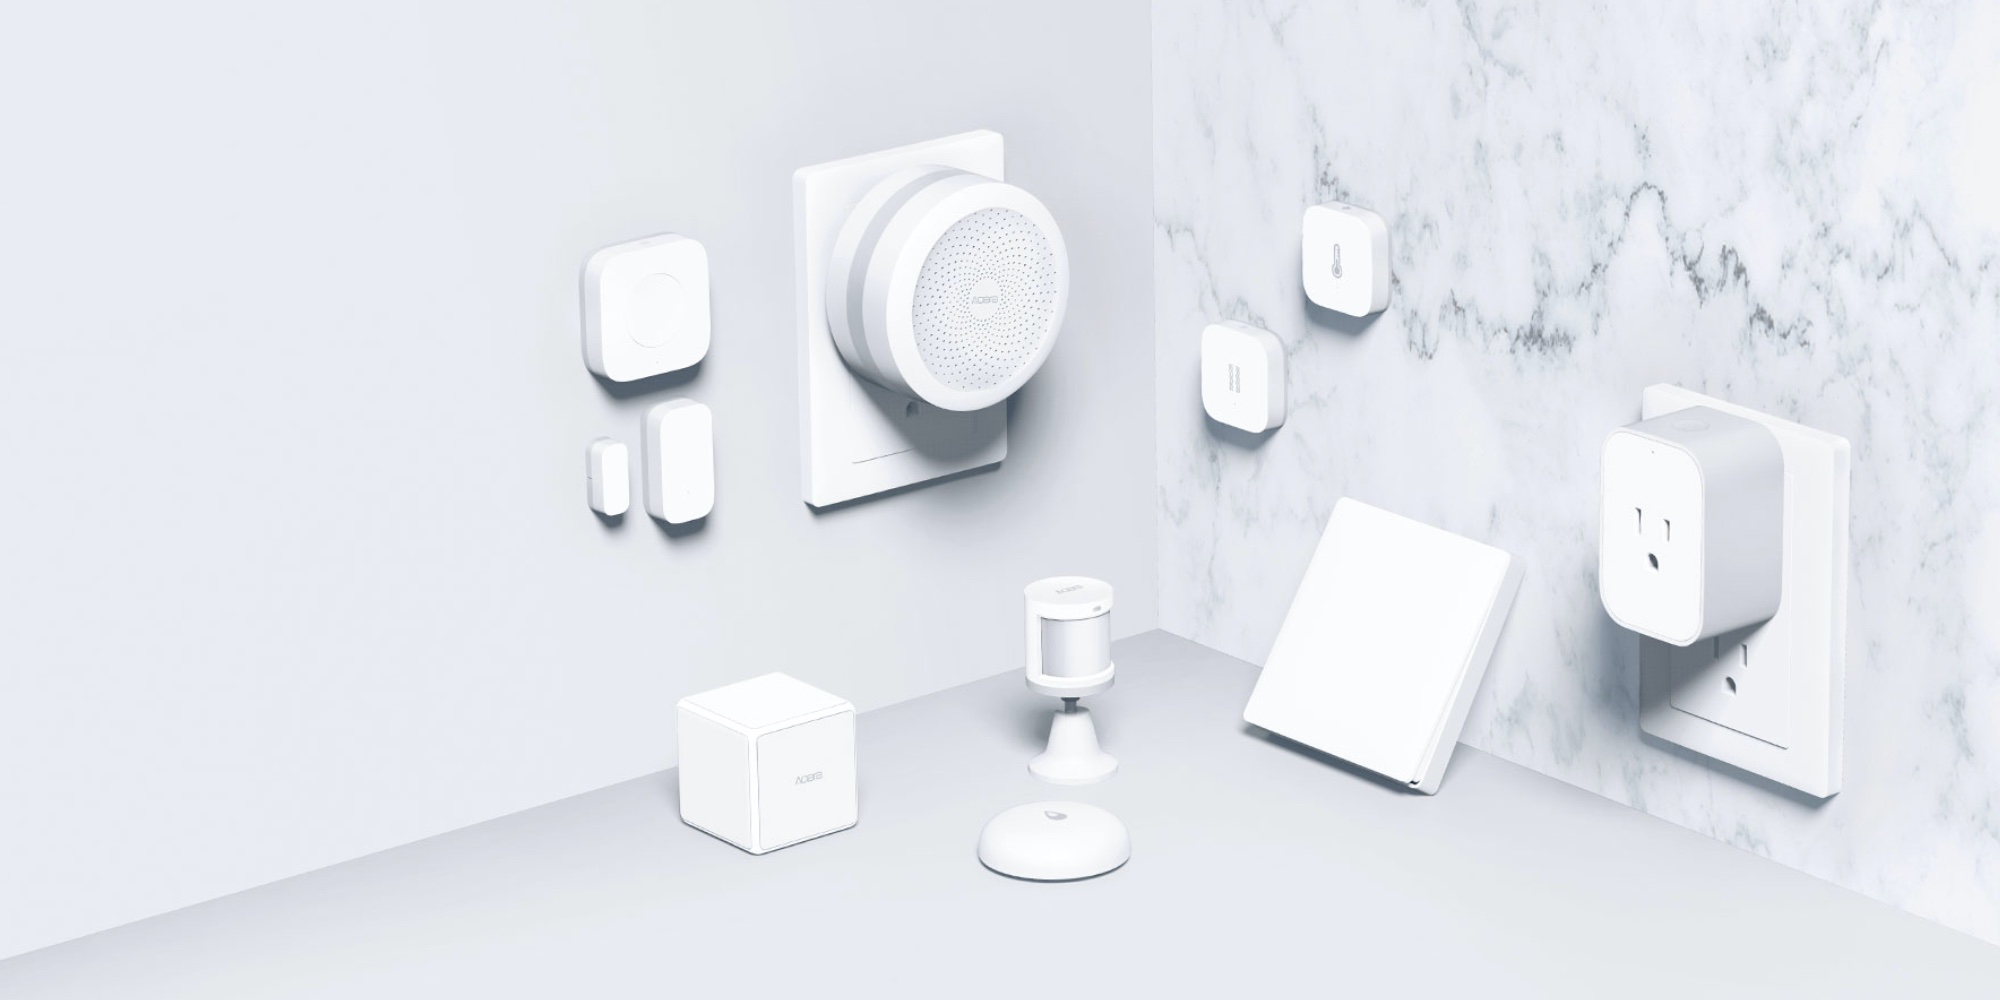 Aqara's HomeKit lineup arrives in the US with Amazon storefront launch [Deal]